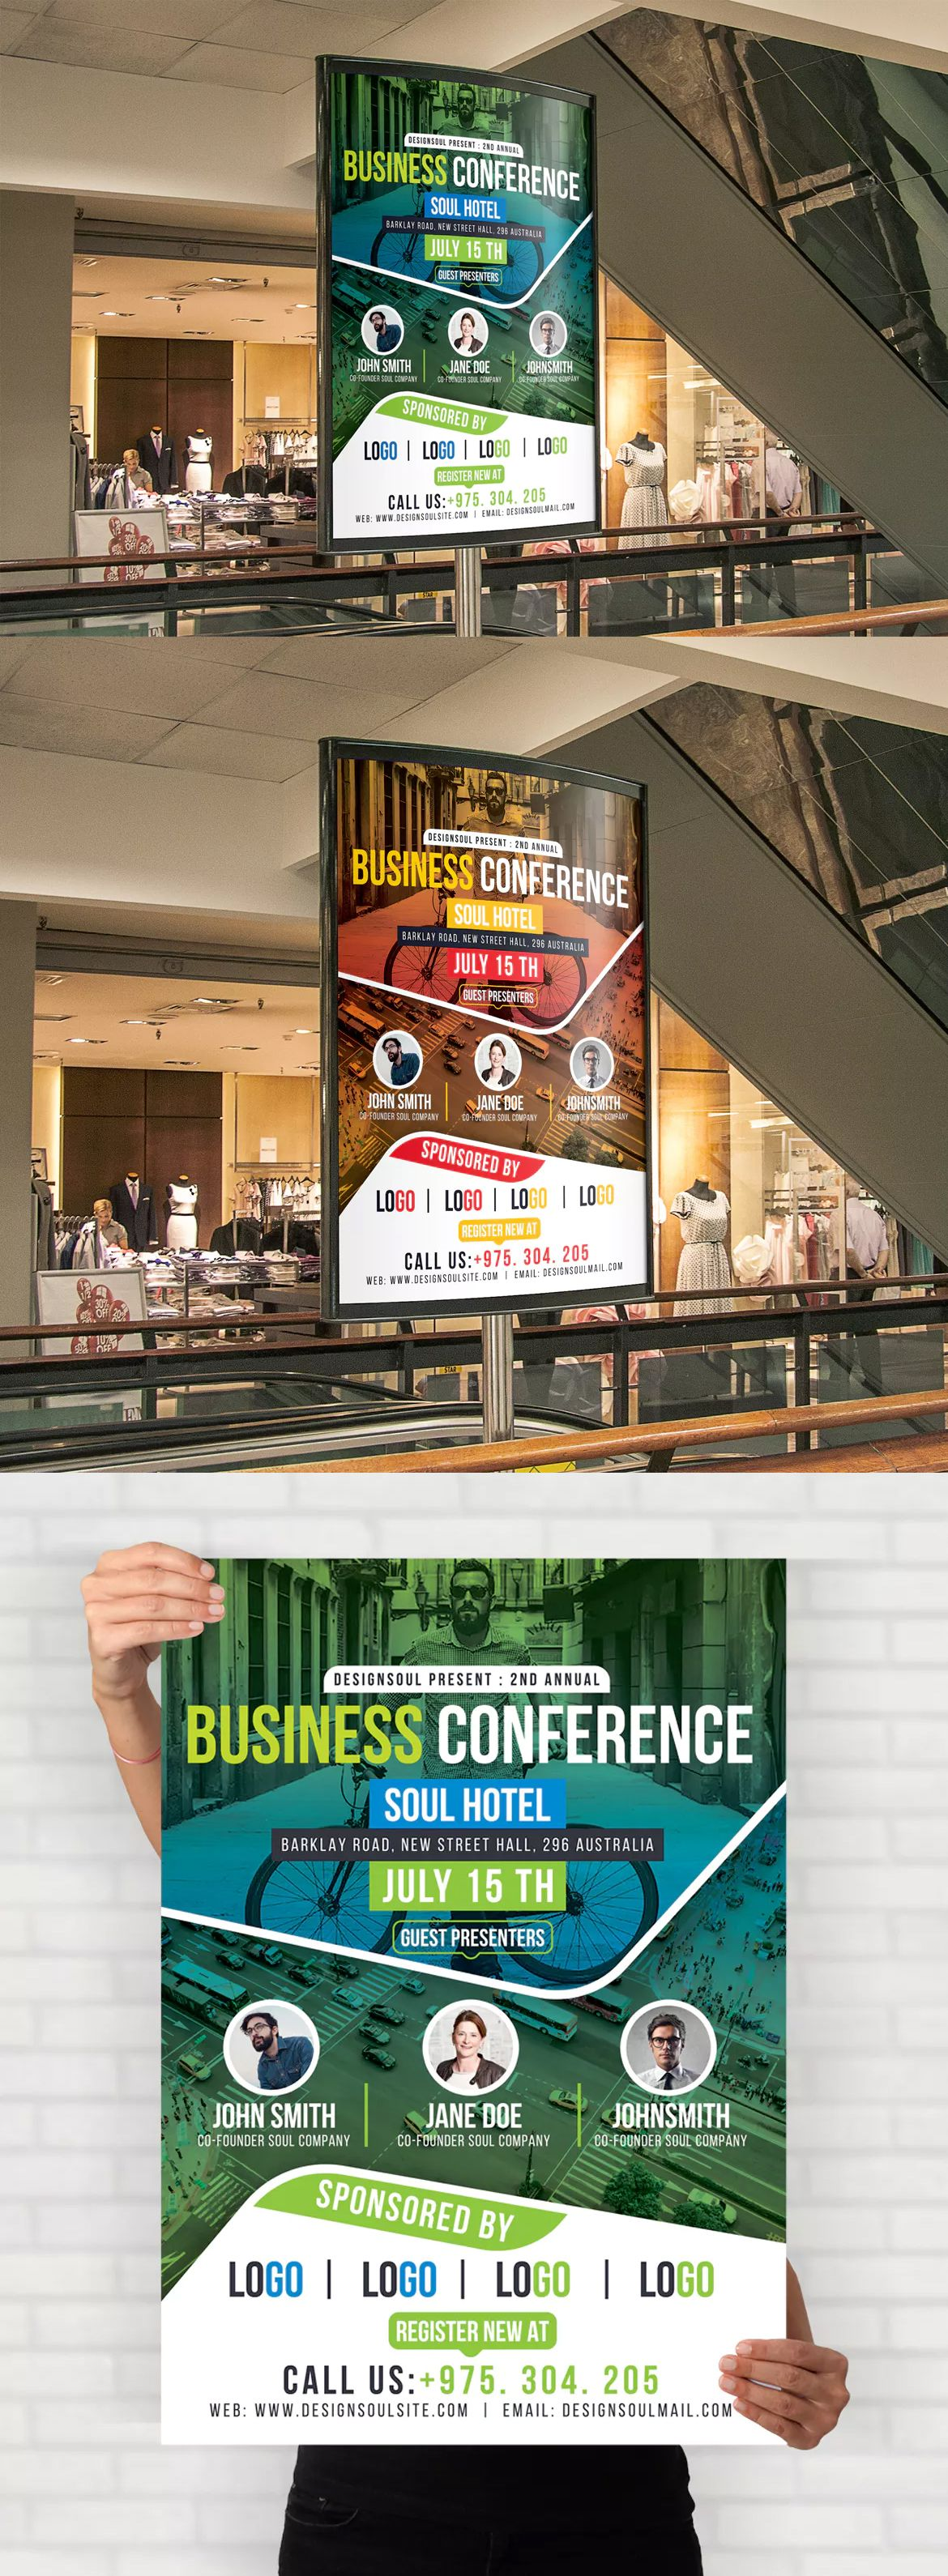 Business Conference Poster Template PSD | Poster Templates